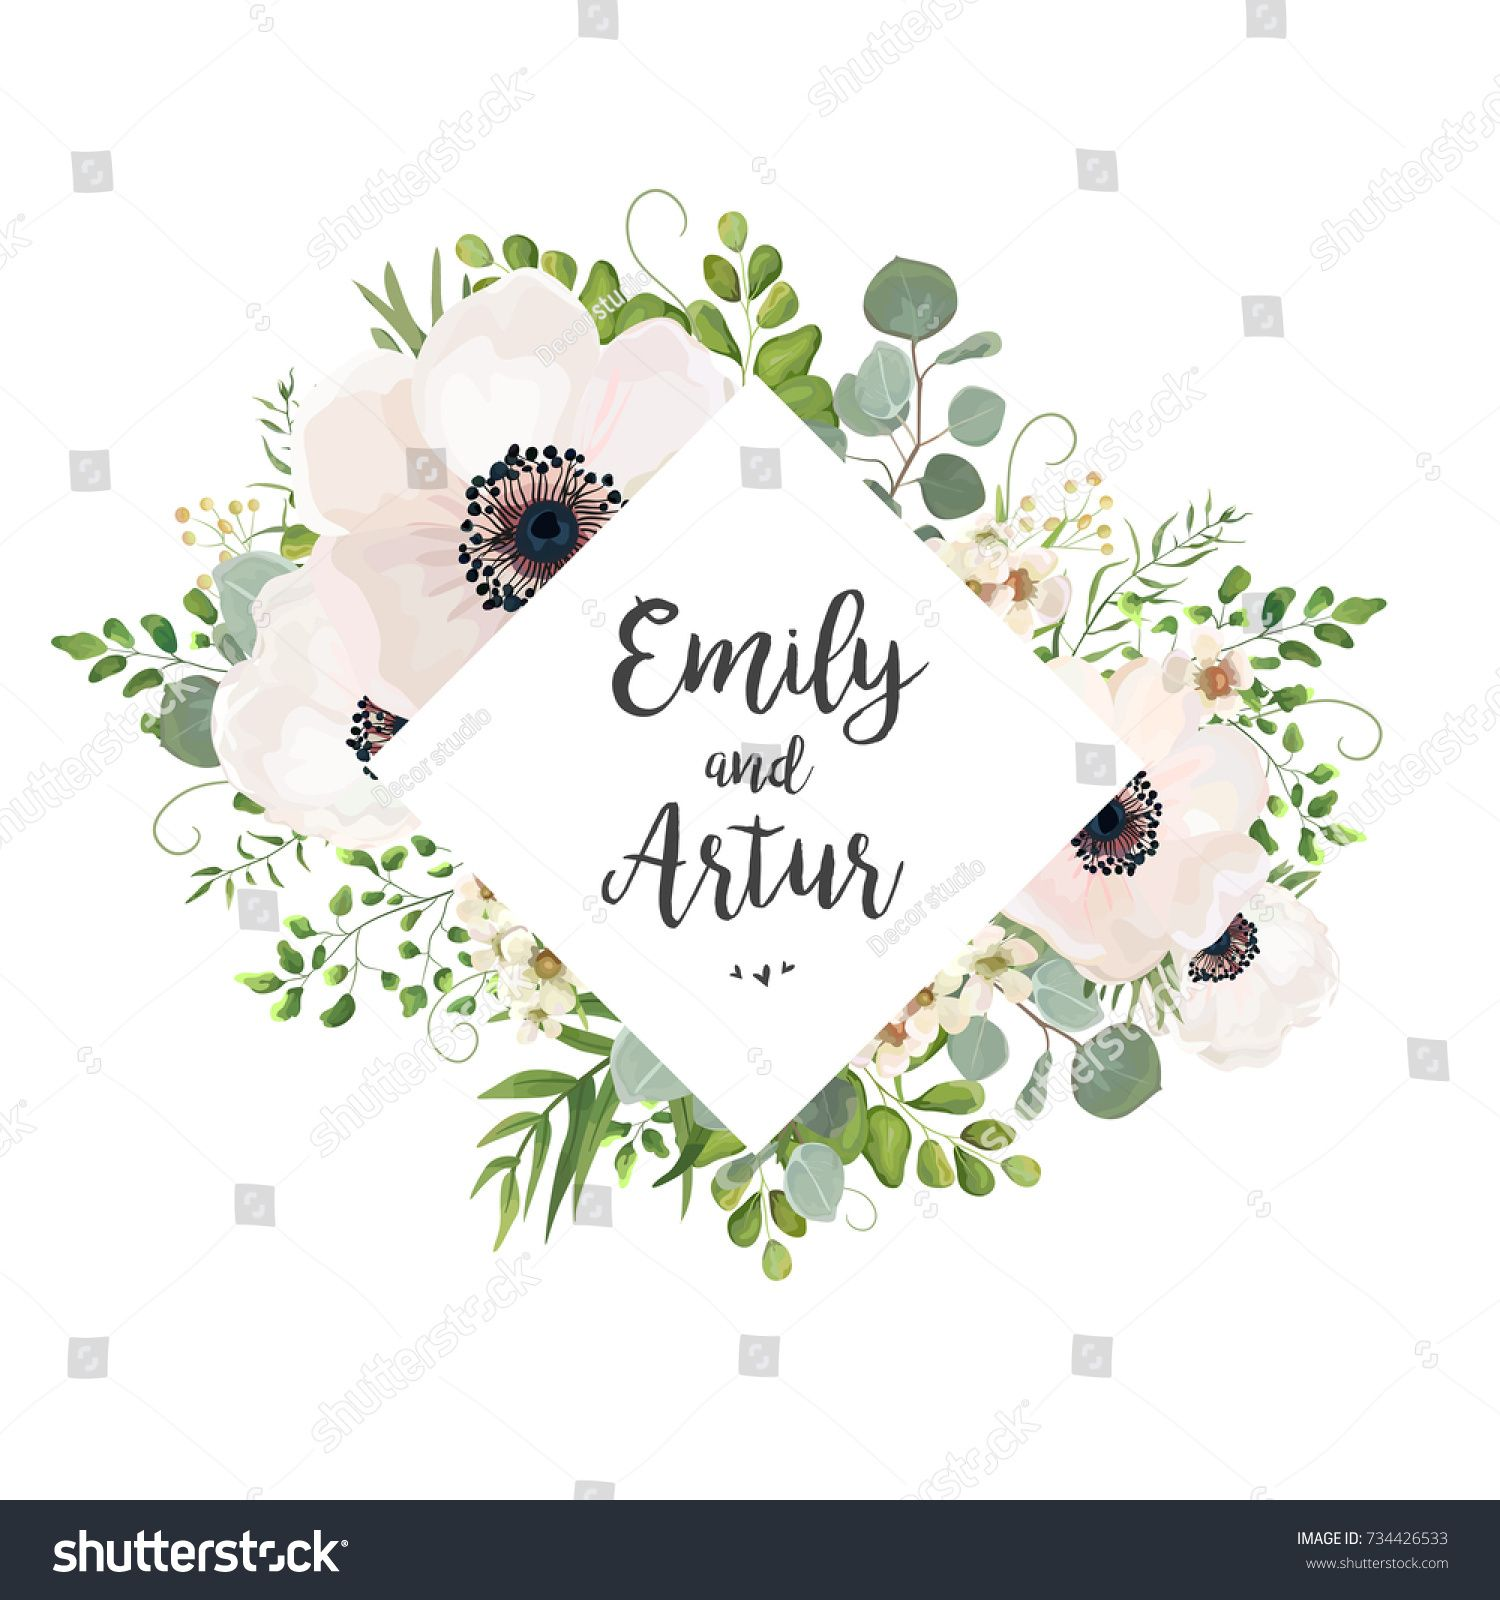 Vector floral wedding invite card design eucalyptus silver dollar vector floral wedding invite card design eucalyptus silver dollar branch greenery foliage natural leaves stopboris Image collections